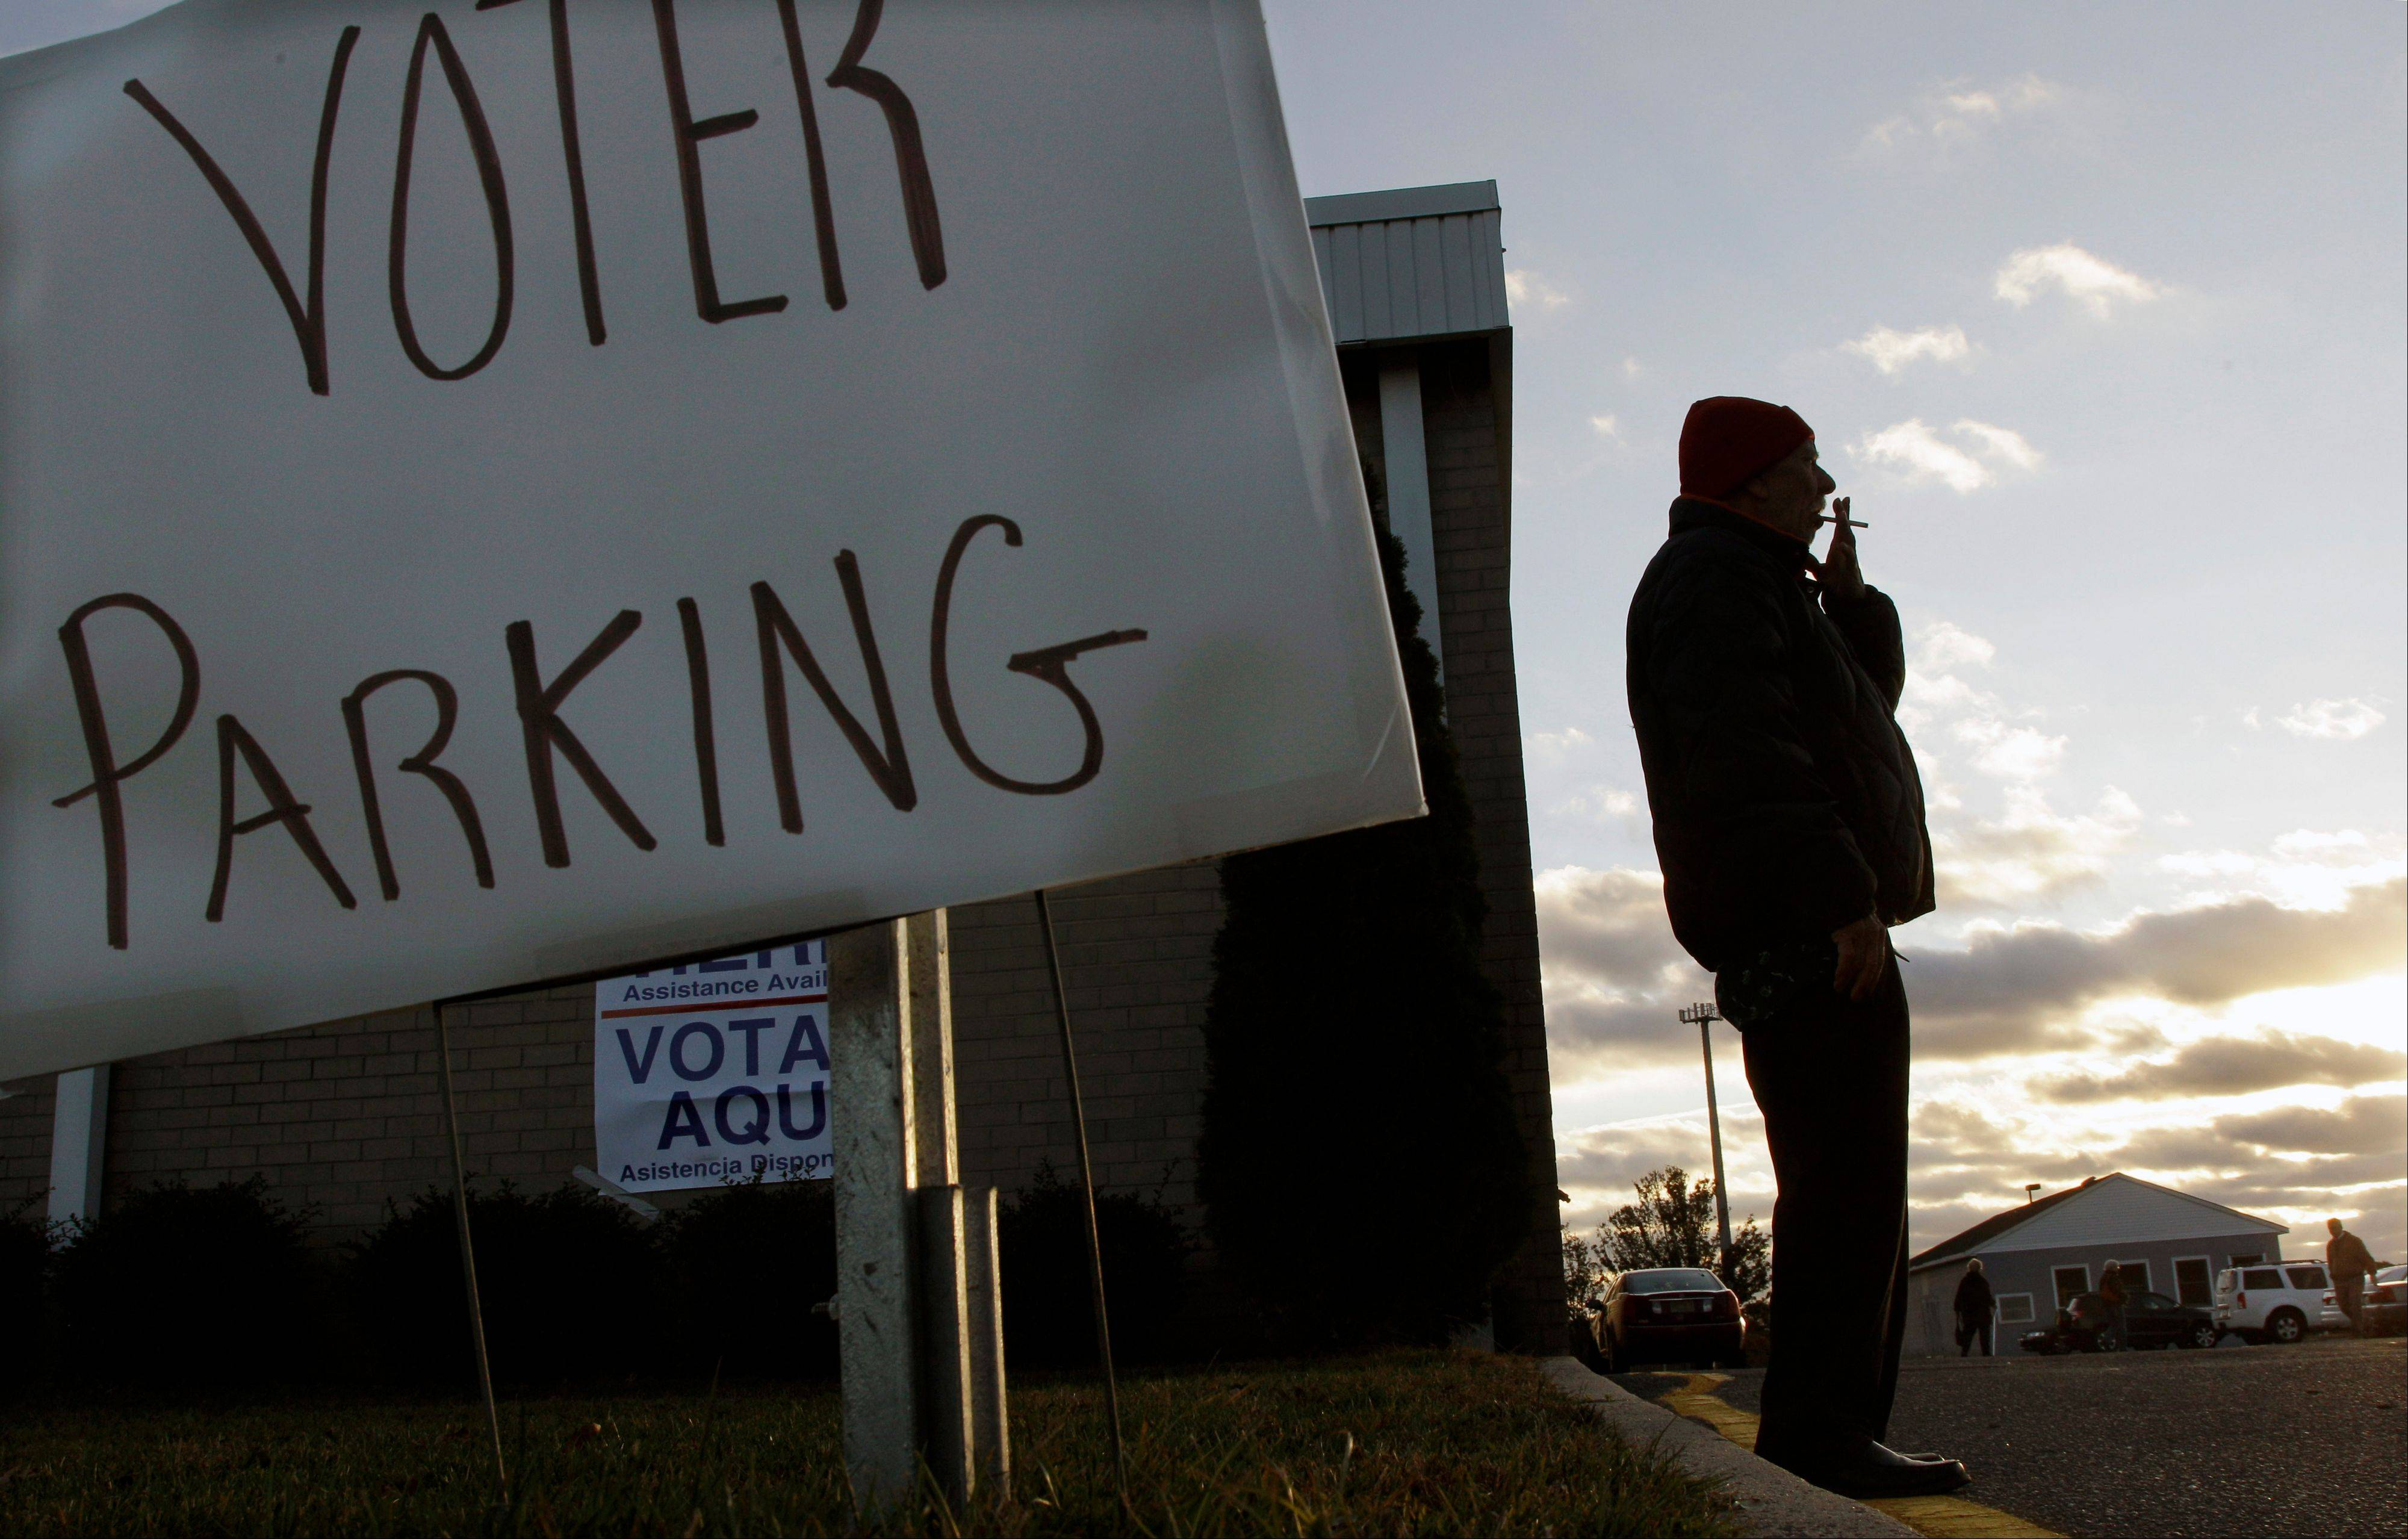 Don Dunkelburger, of Seaside Heights, N.J., takes a smoke break outside a shelter and polling station at Toms River East High School Tuesday, Nov. 6, 2012. Dunkelburger, who lost his home and was staying in the shelter, said he was not clear on where he was supposed to vote Tuesday.